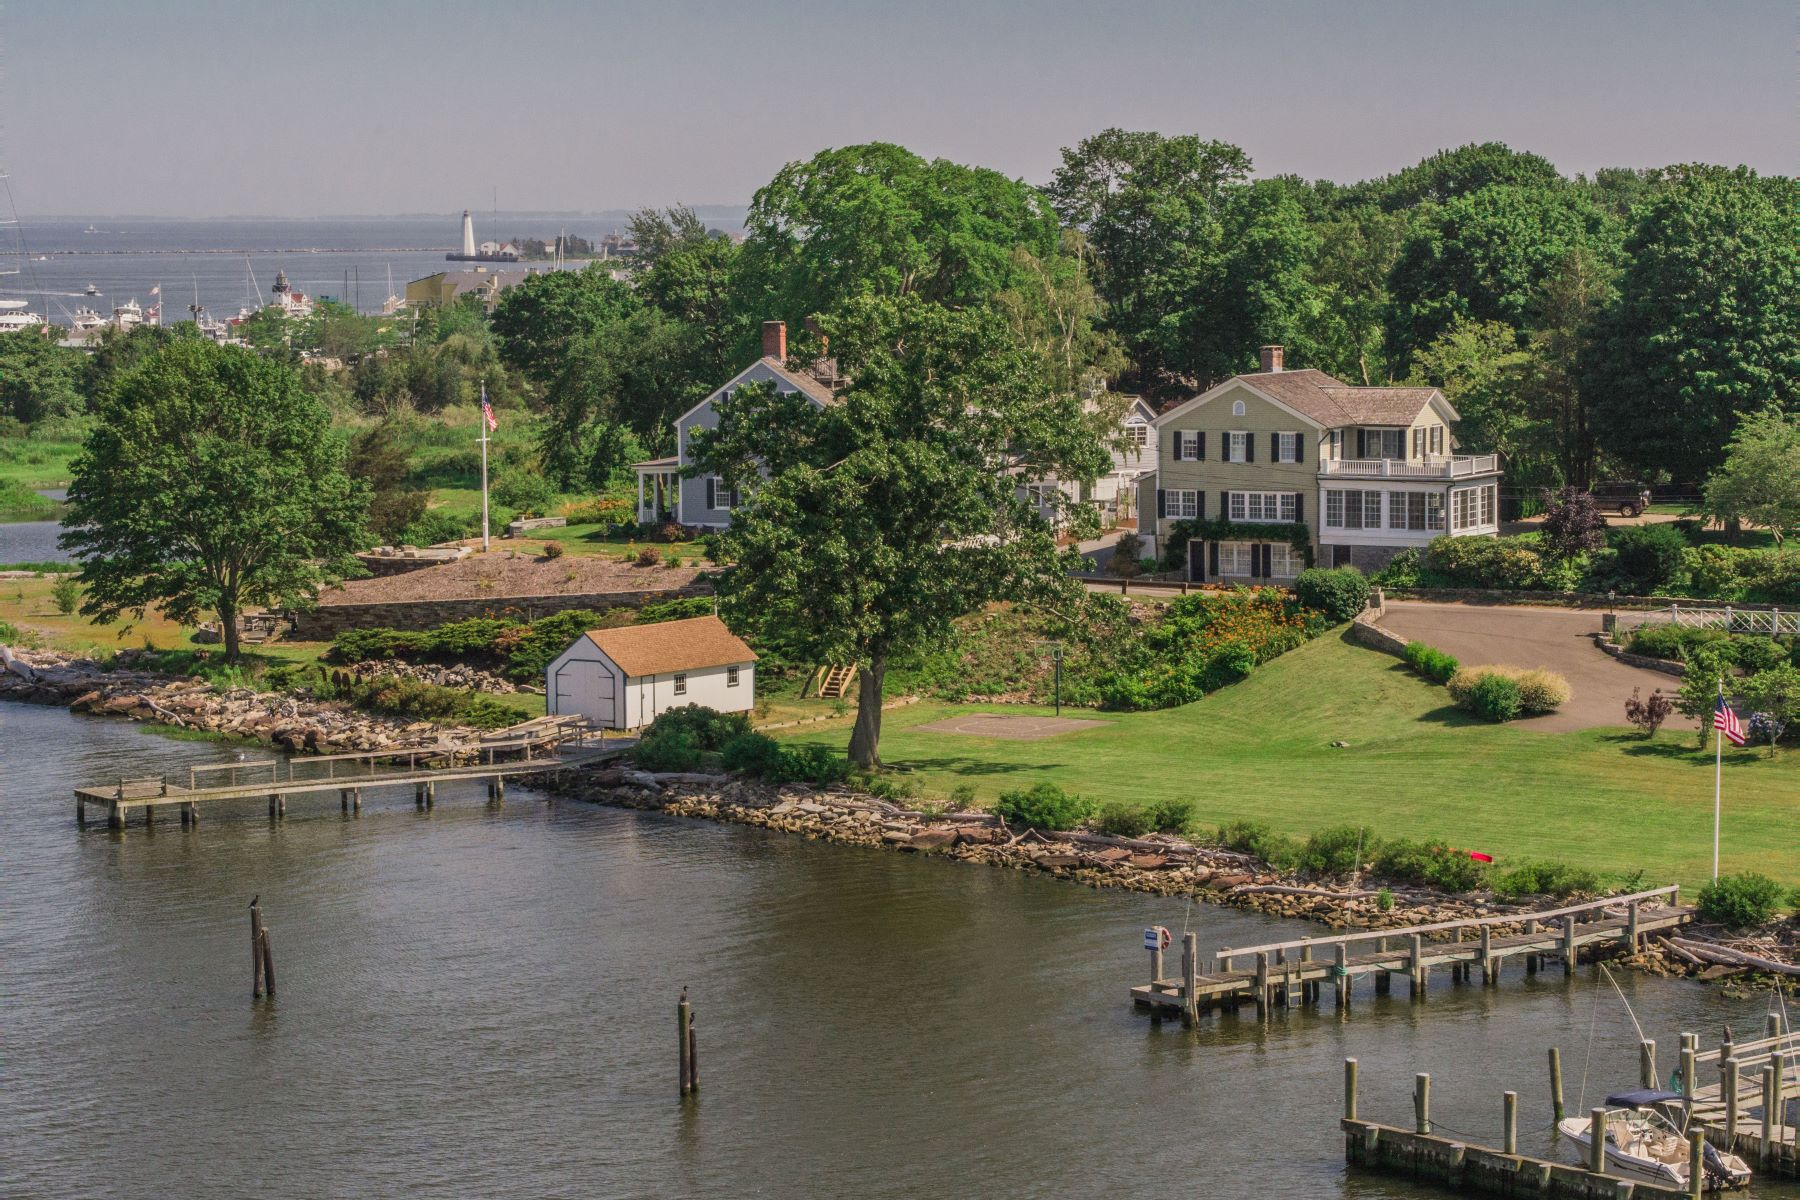 voor Verkoop op Ca.1850 Colonial Meticulously Restored Has Water Views 184 North Cove Road, Old Saybrook, Connecticut 06475 Verenigde Staten